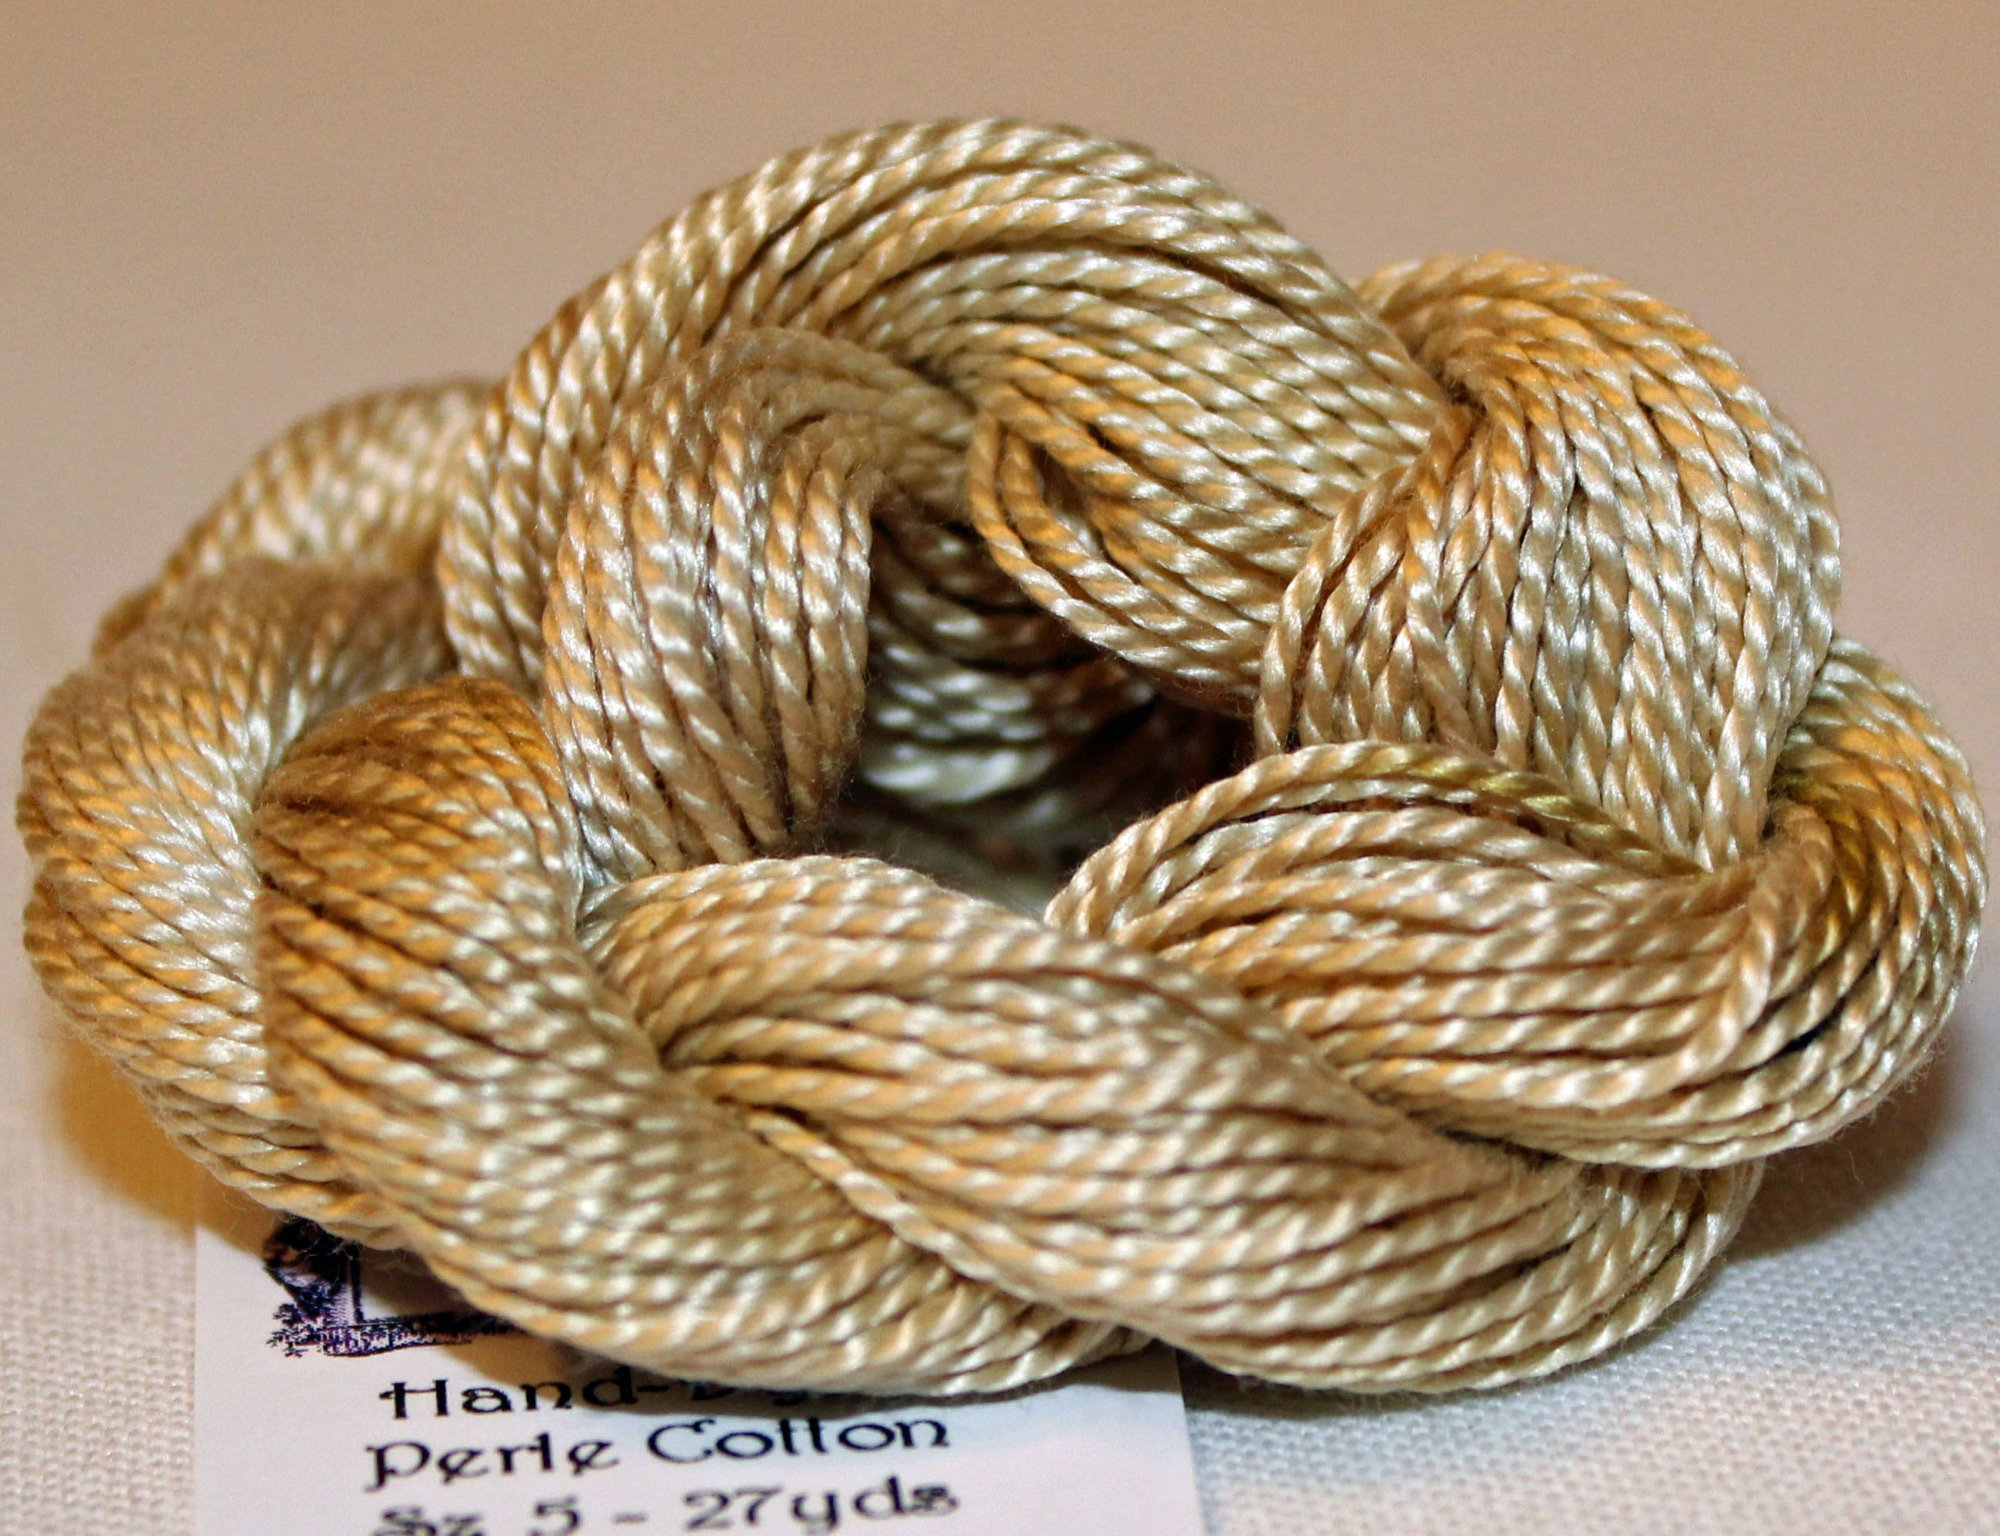 Sand- Solid Hand-Dyed Perle Cotton Size 5